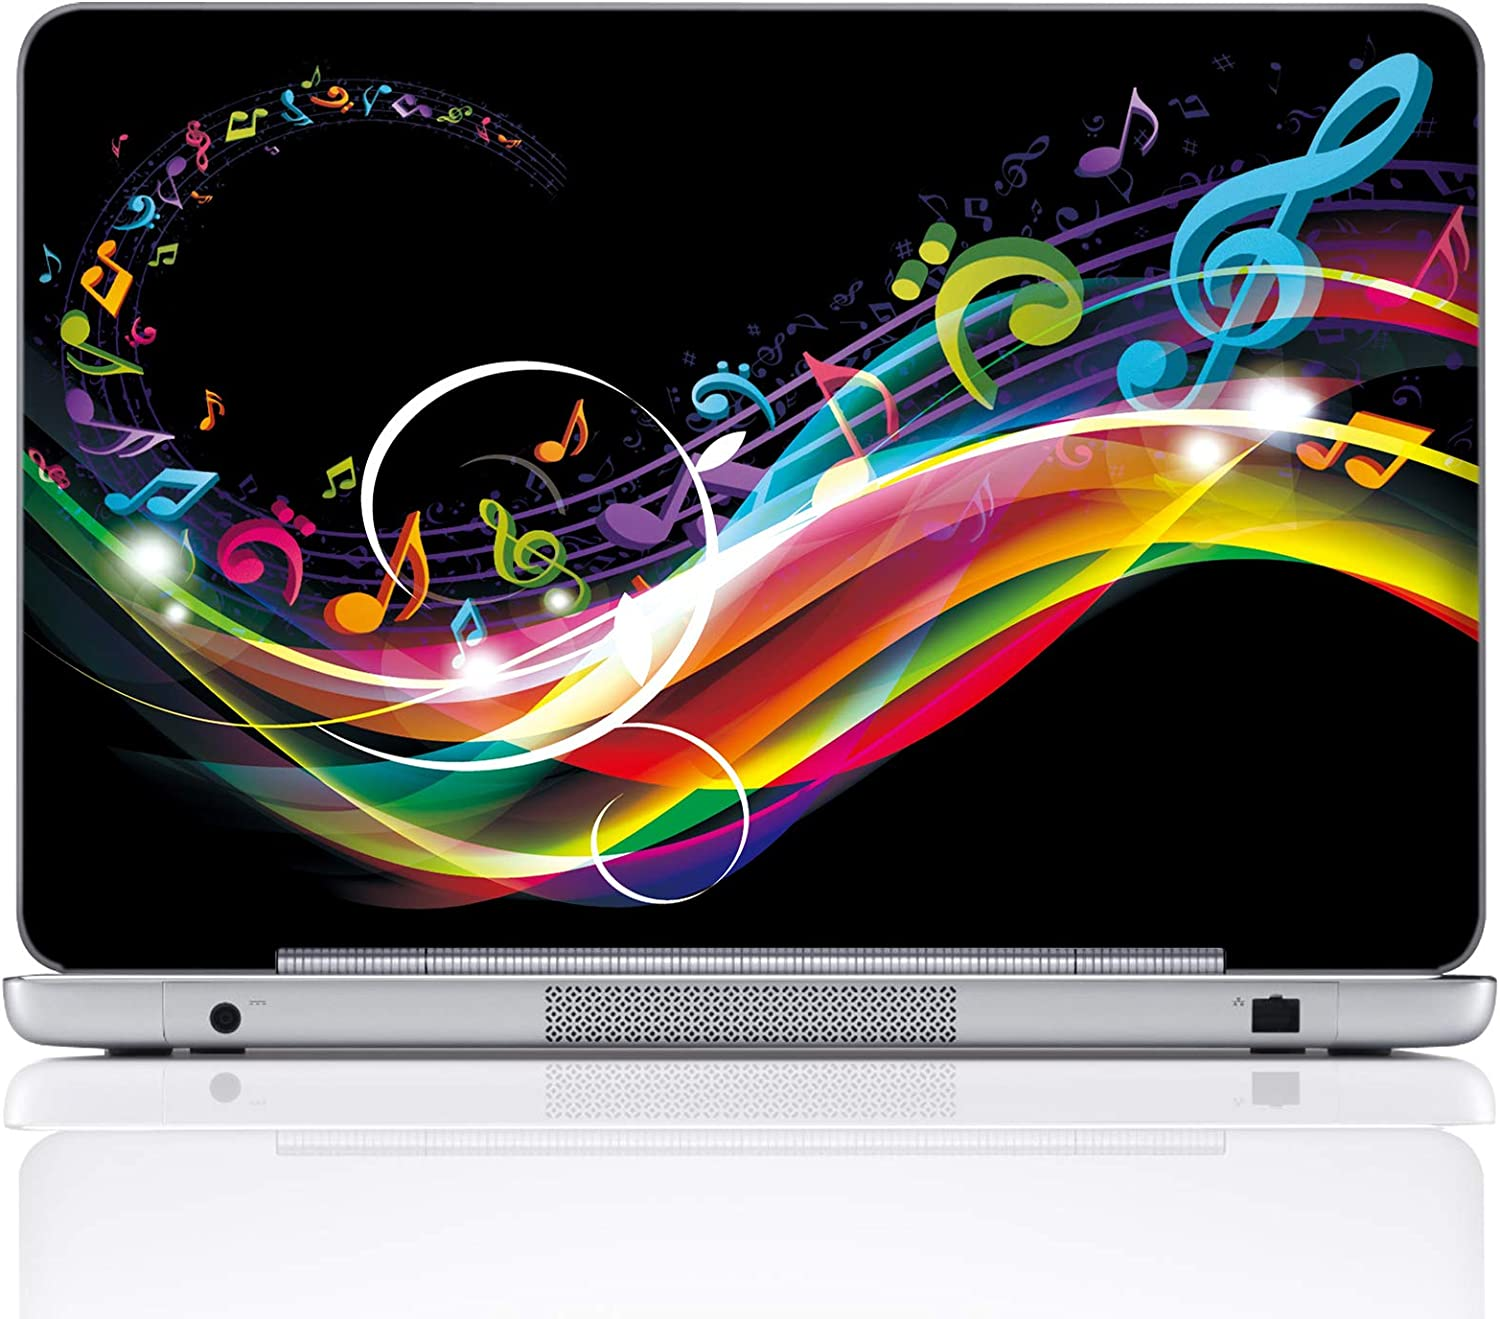 Meffort Inc 15 15.6 Inch Laptop Notebook Skin Sticker Cover Art Decal (Included 2 Wrist pad) - Rainbow Music Note Design